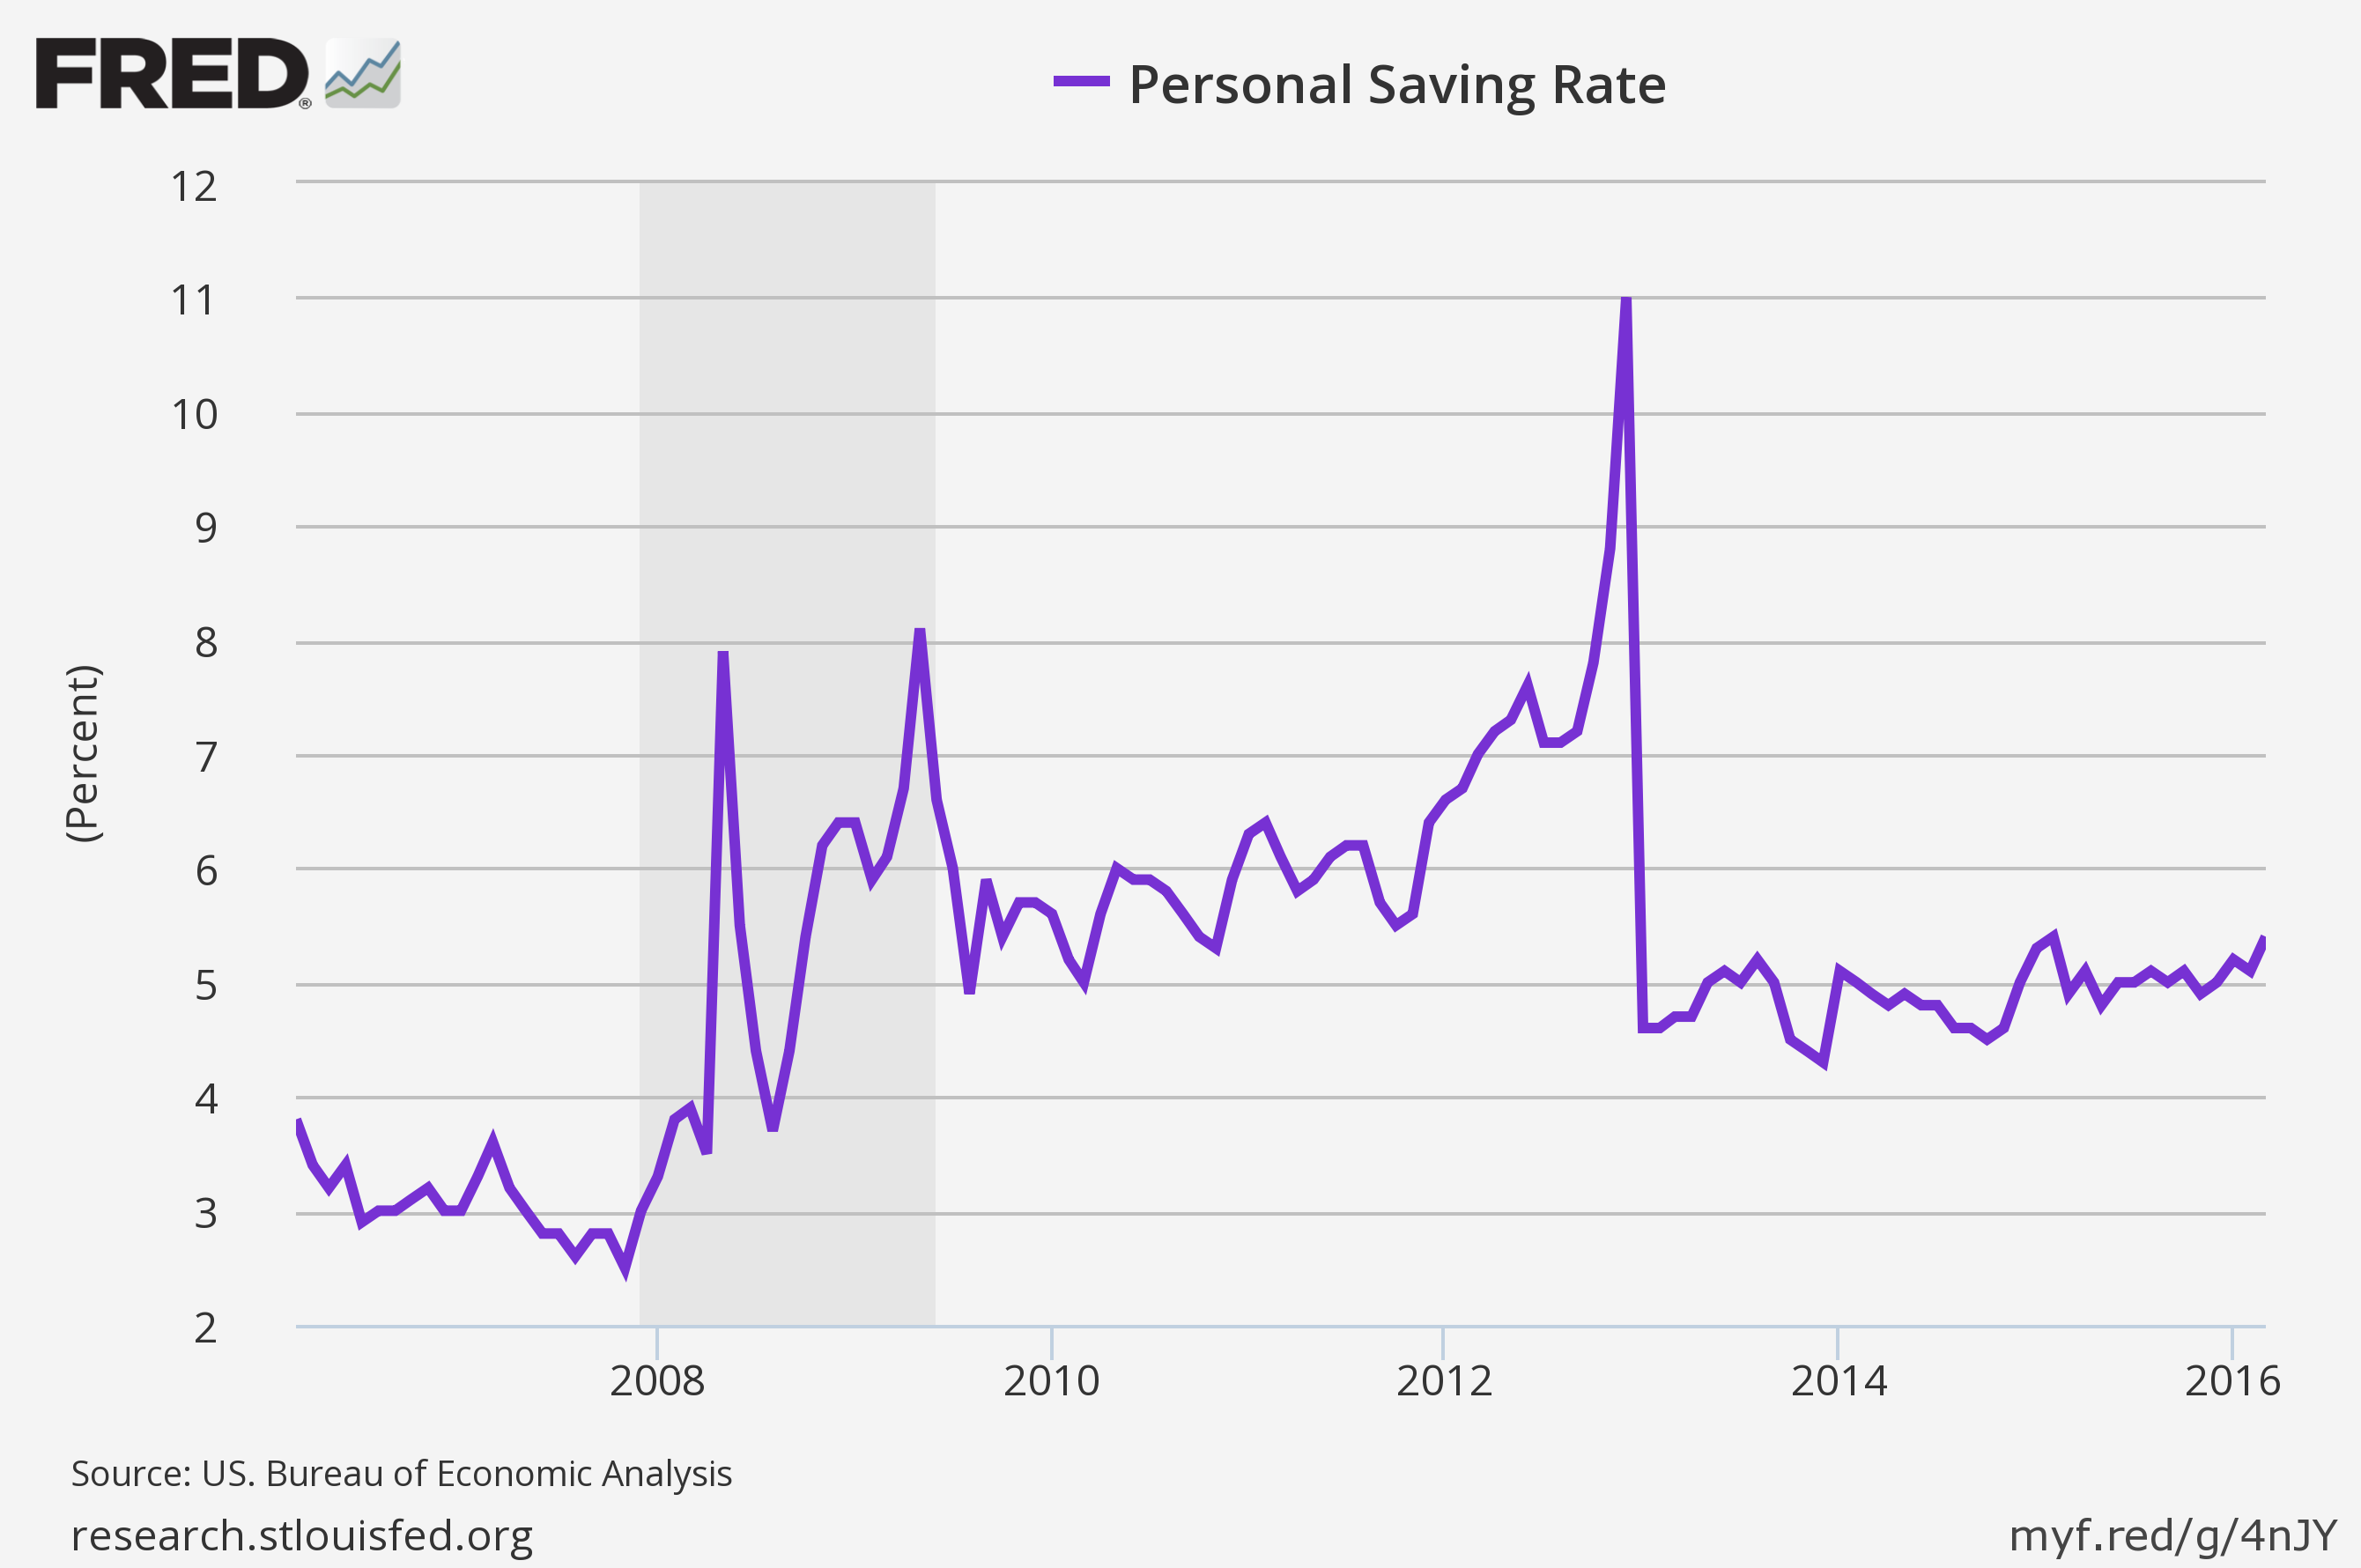 The savings rate steadily marching higher.